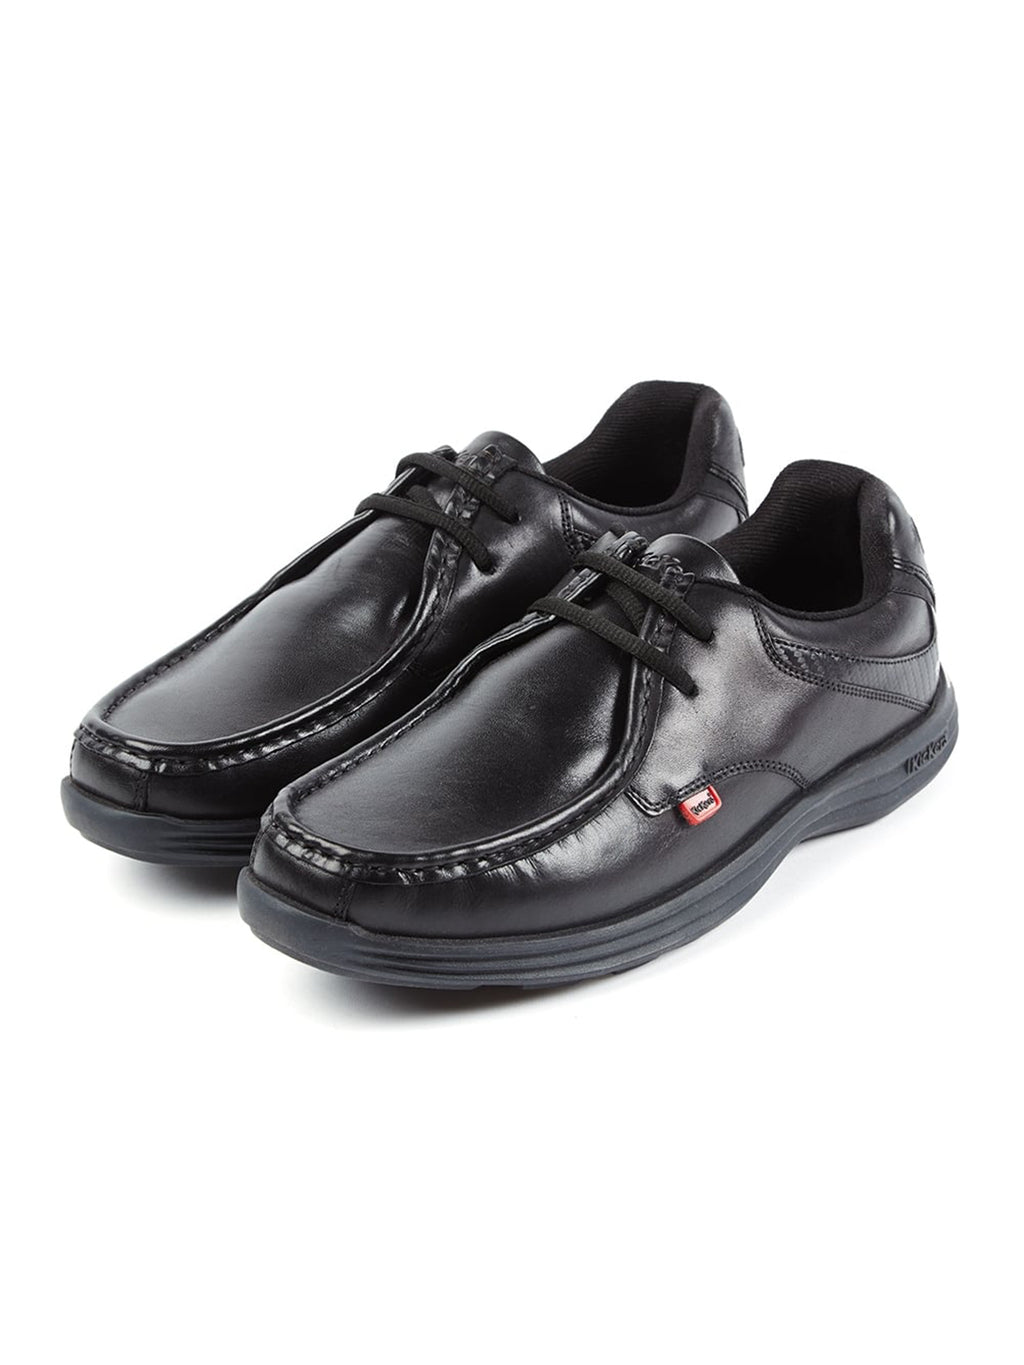 kickers school shoes